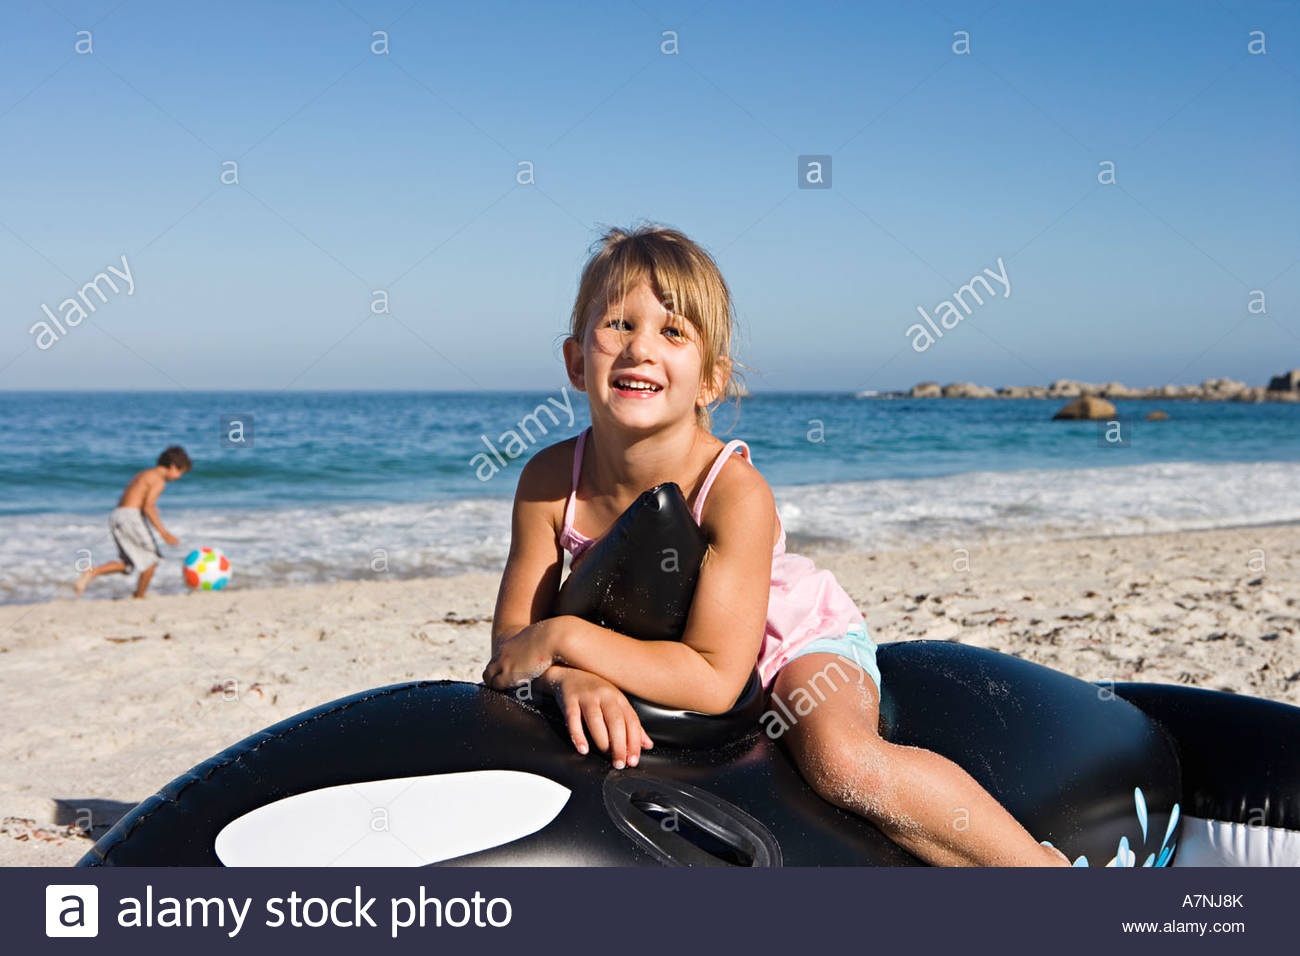 Girl 5 7 sitting on inflatable toy whale on sandy beach smiling portrait - Stock Image